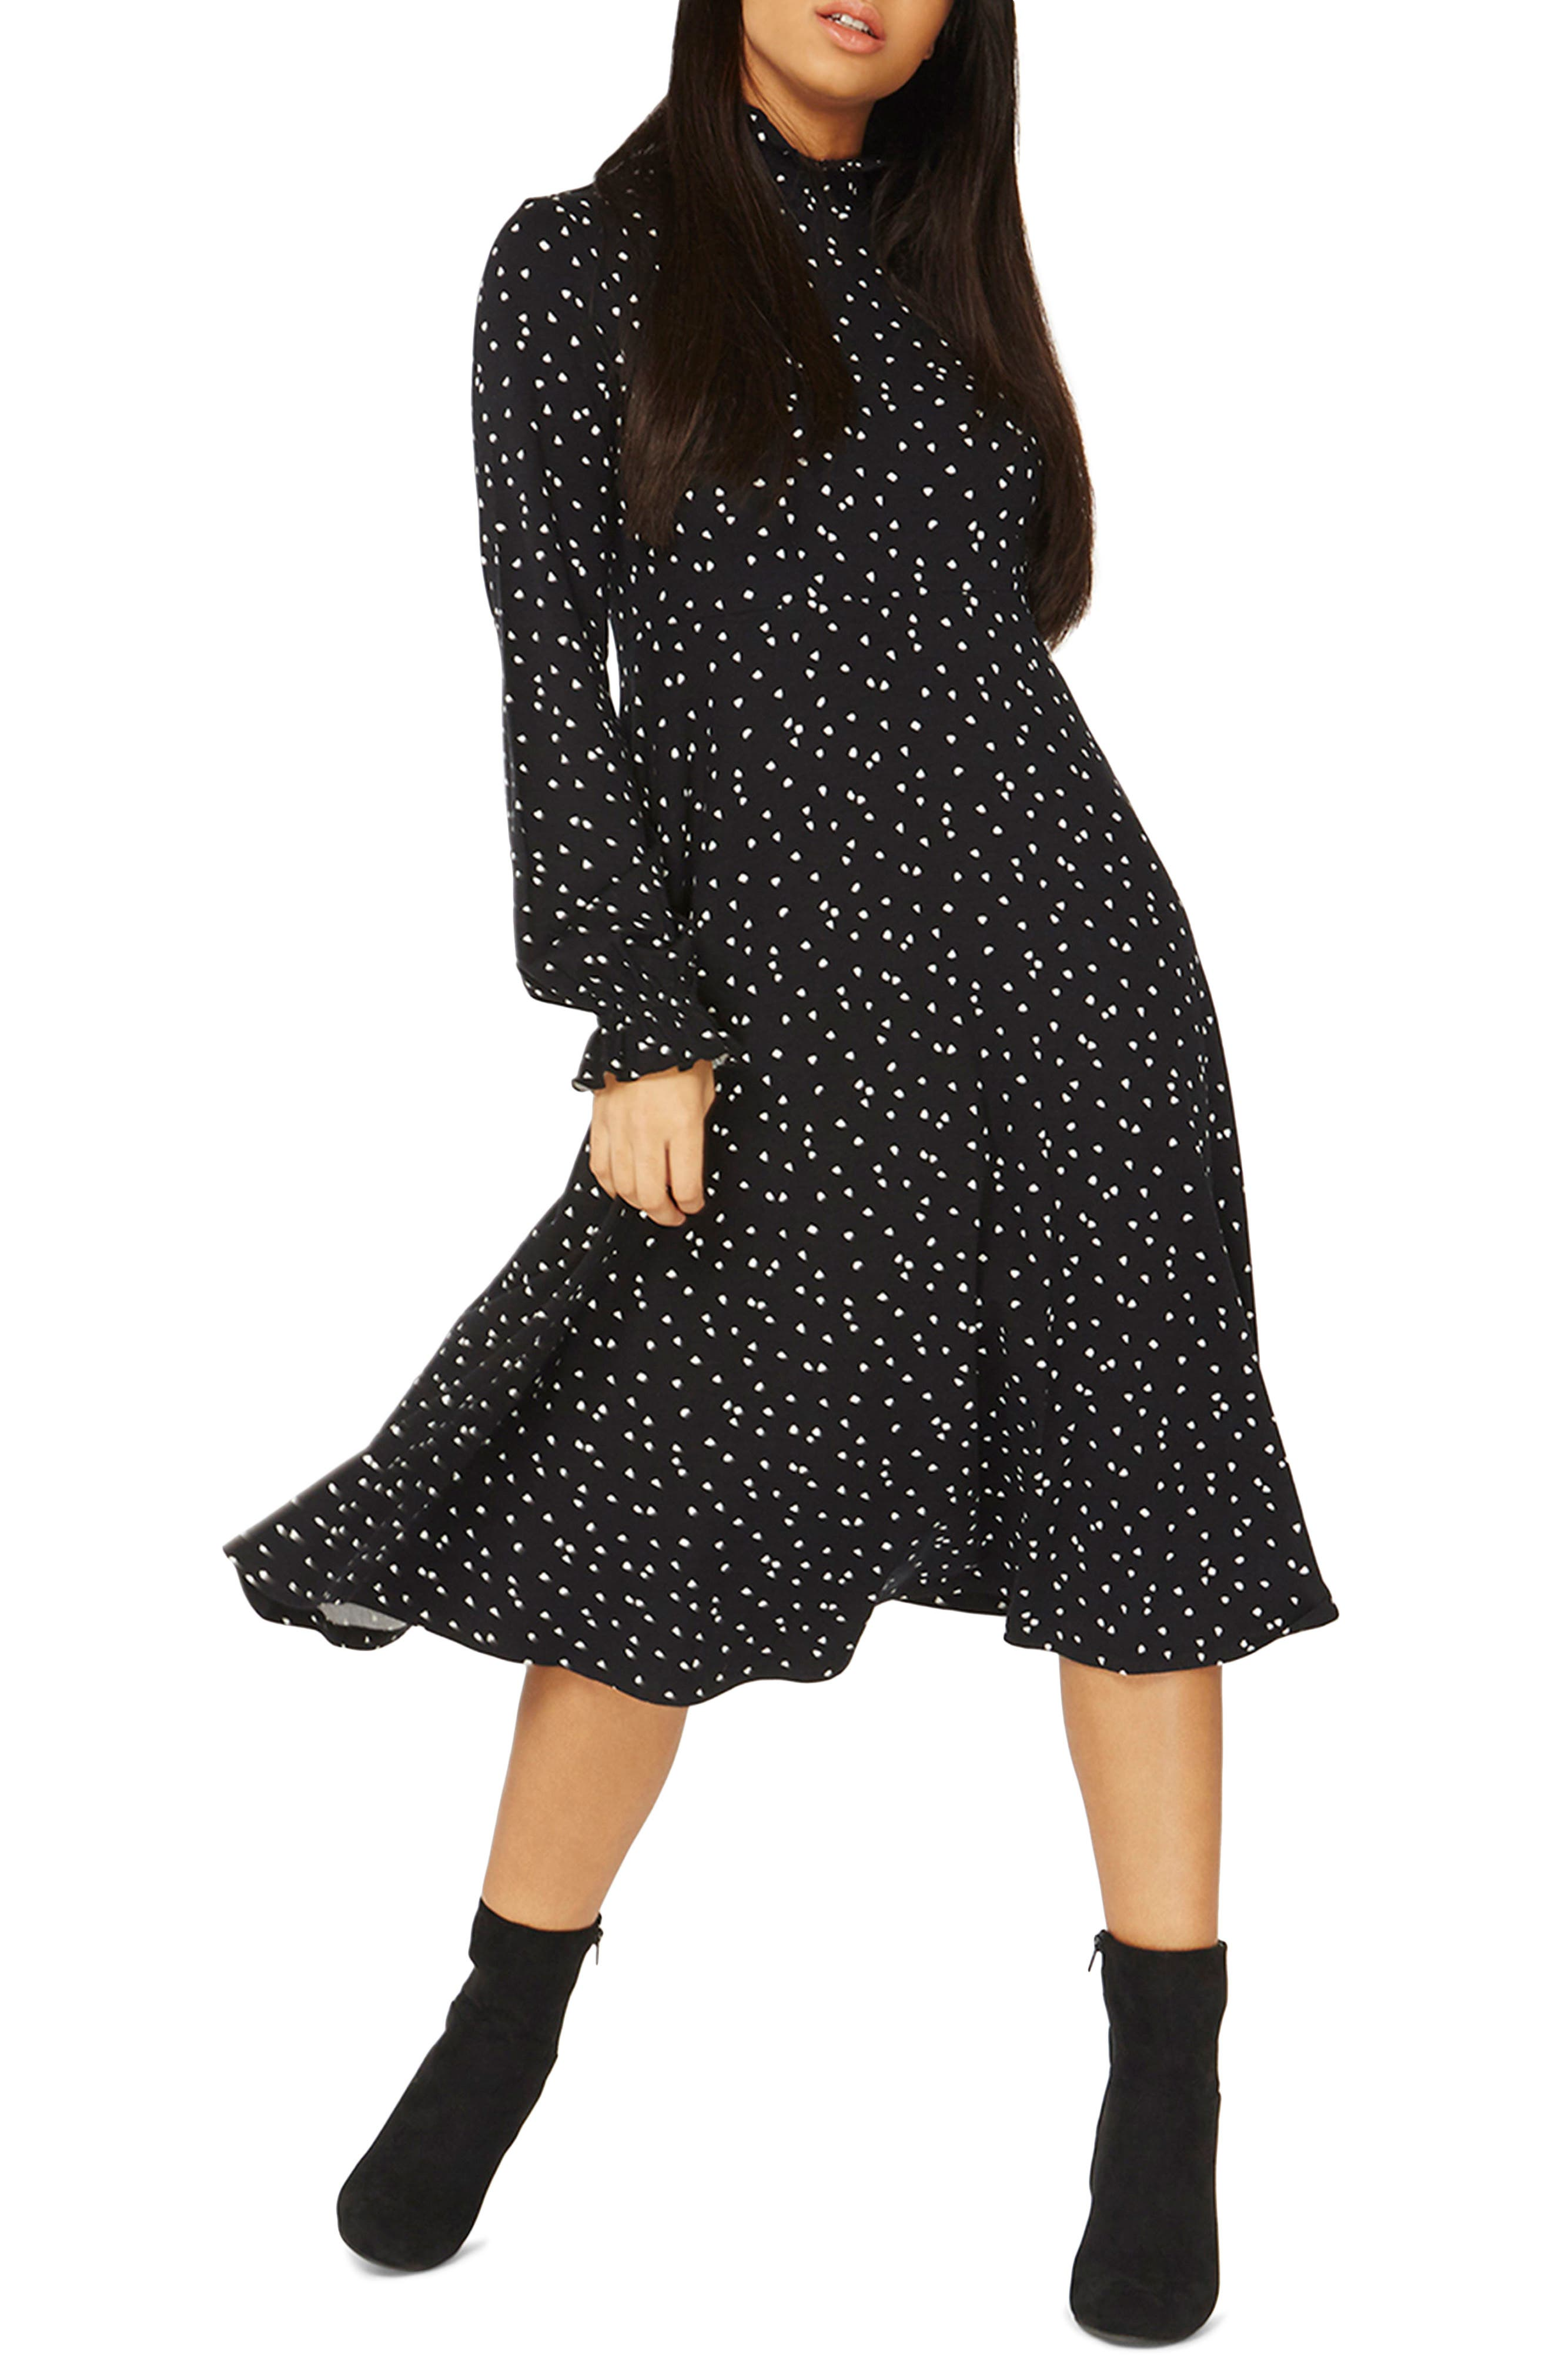 Heart Midi Dress,                         Main,                         color, Black